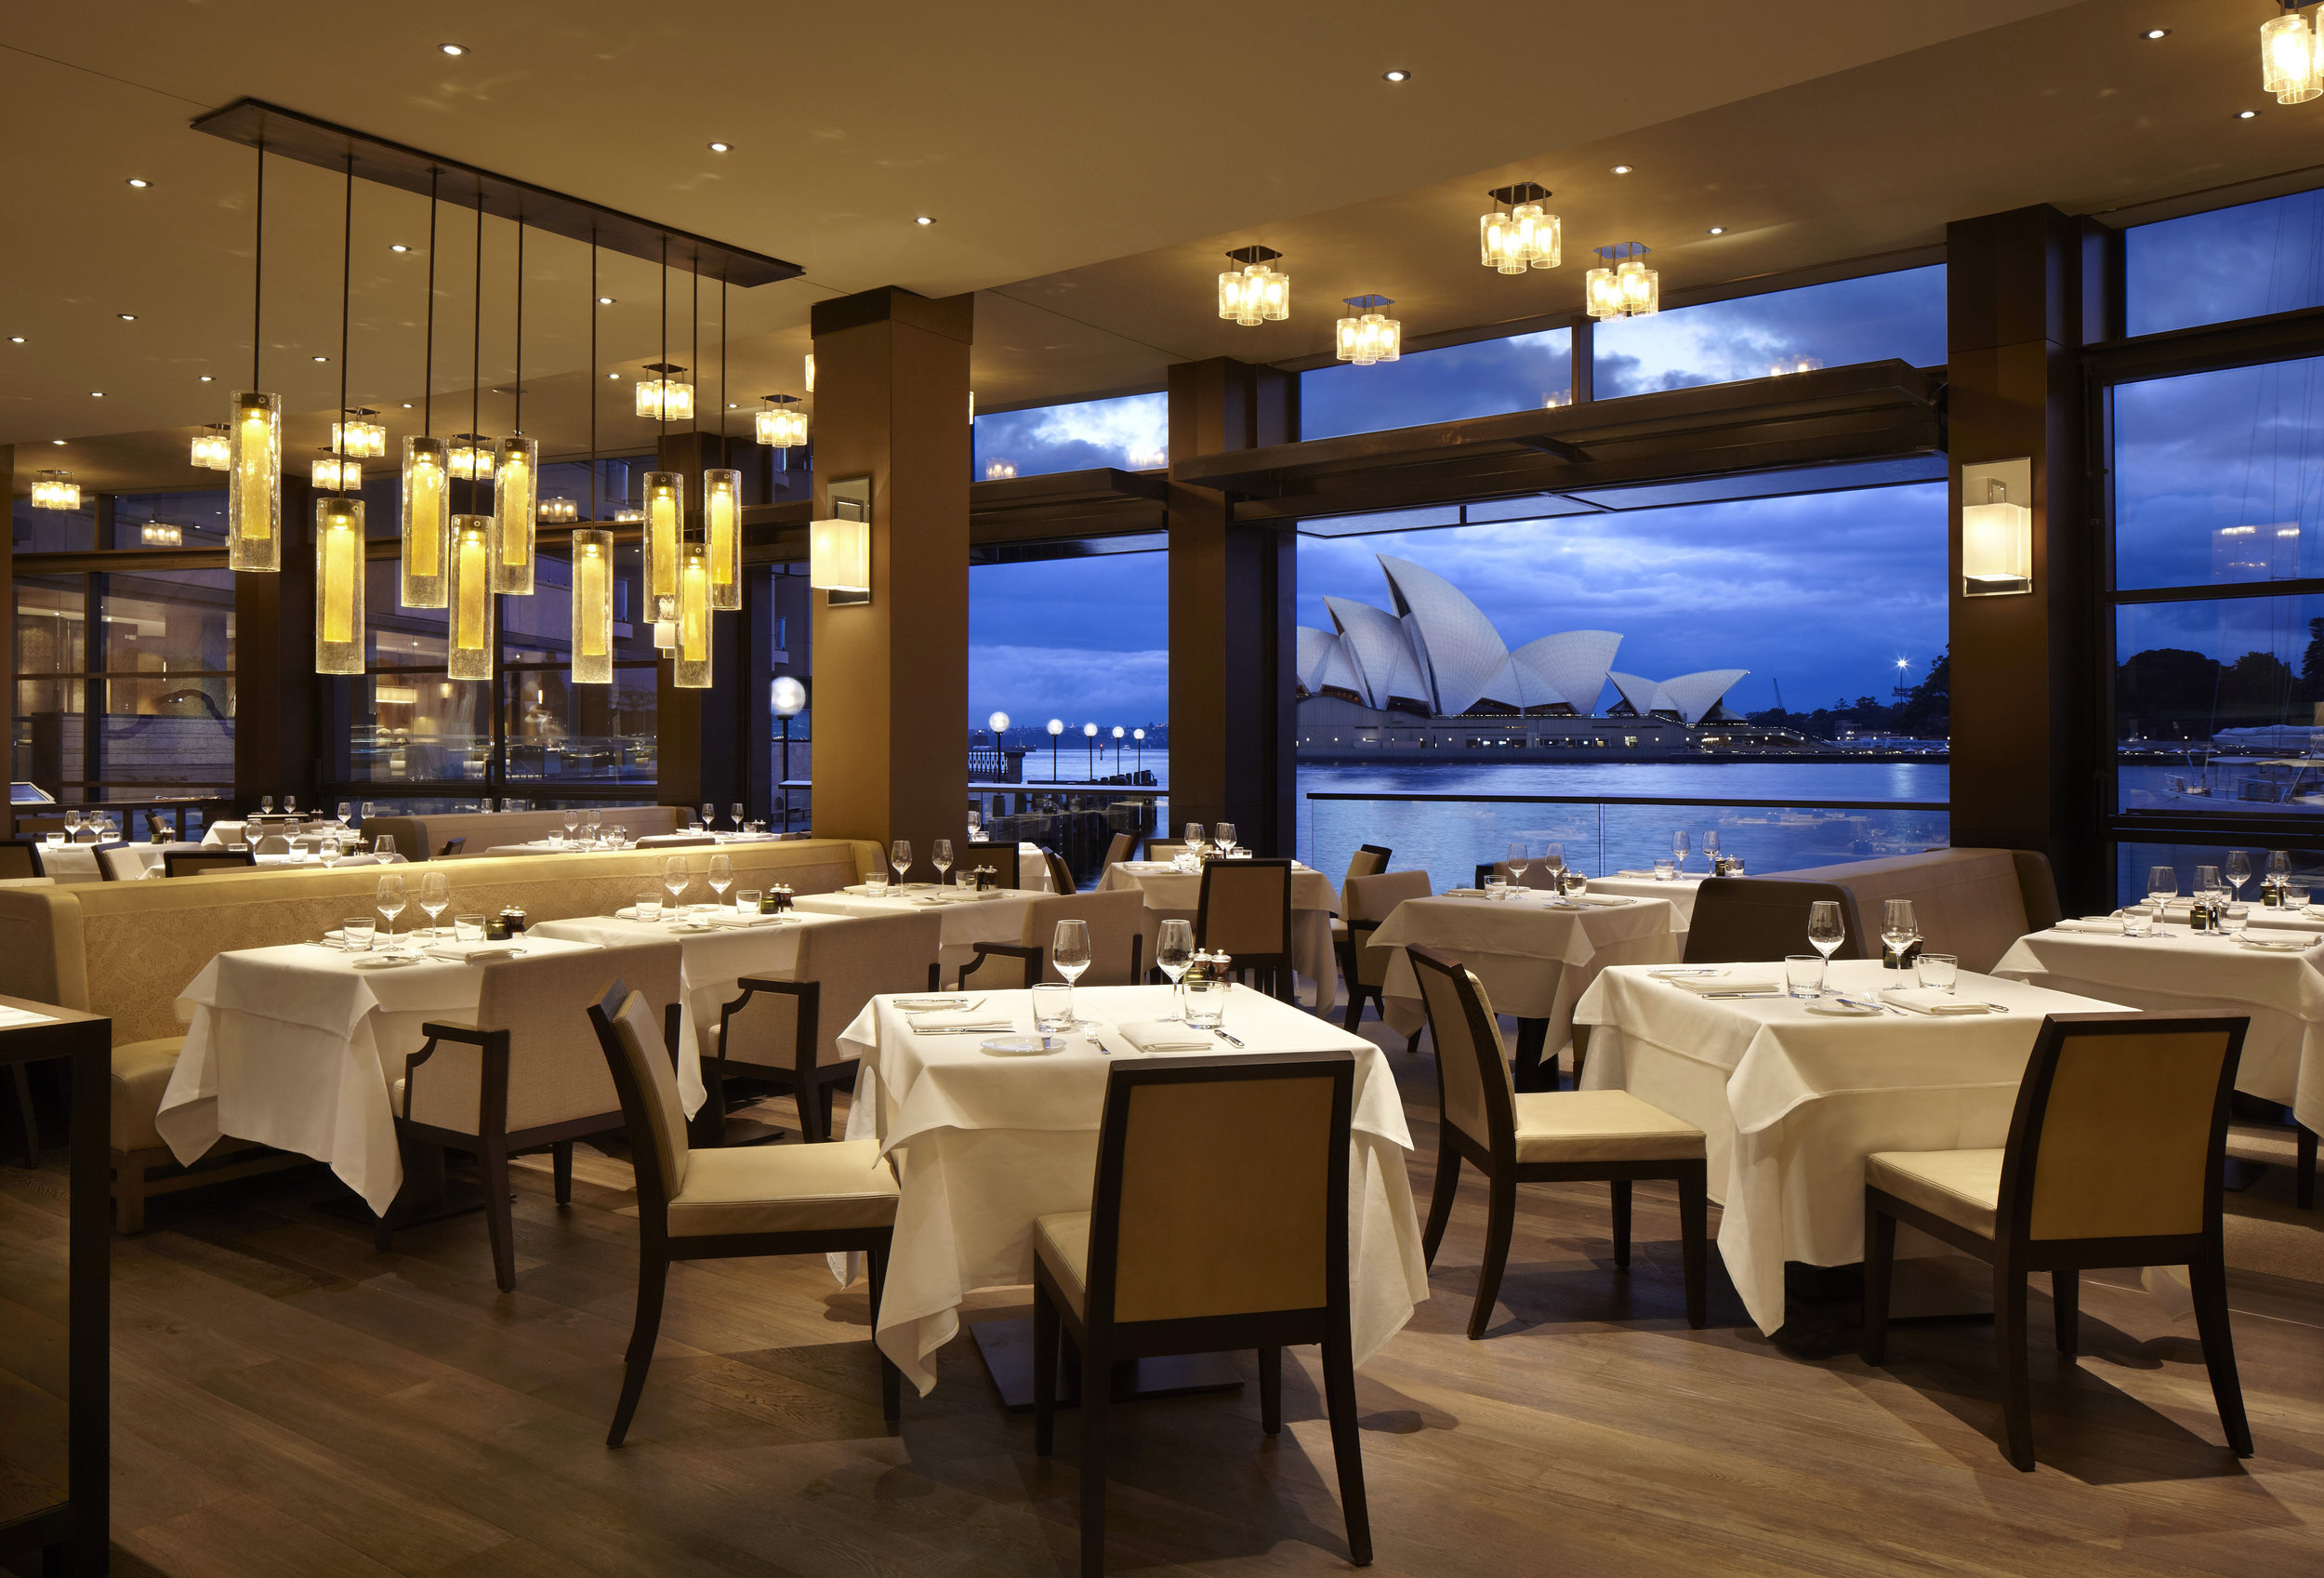 Park Hyatt Sydney harbourside wedding venue and accommodation in Sydney